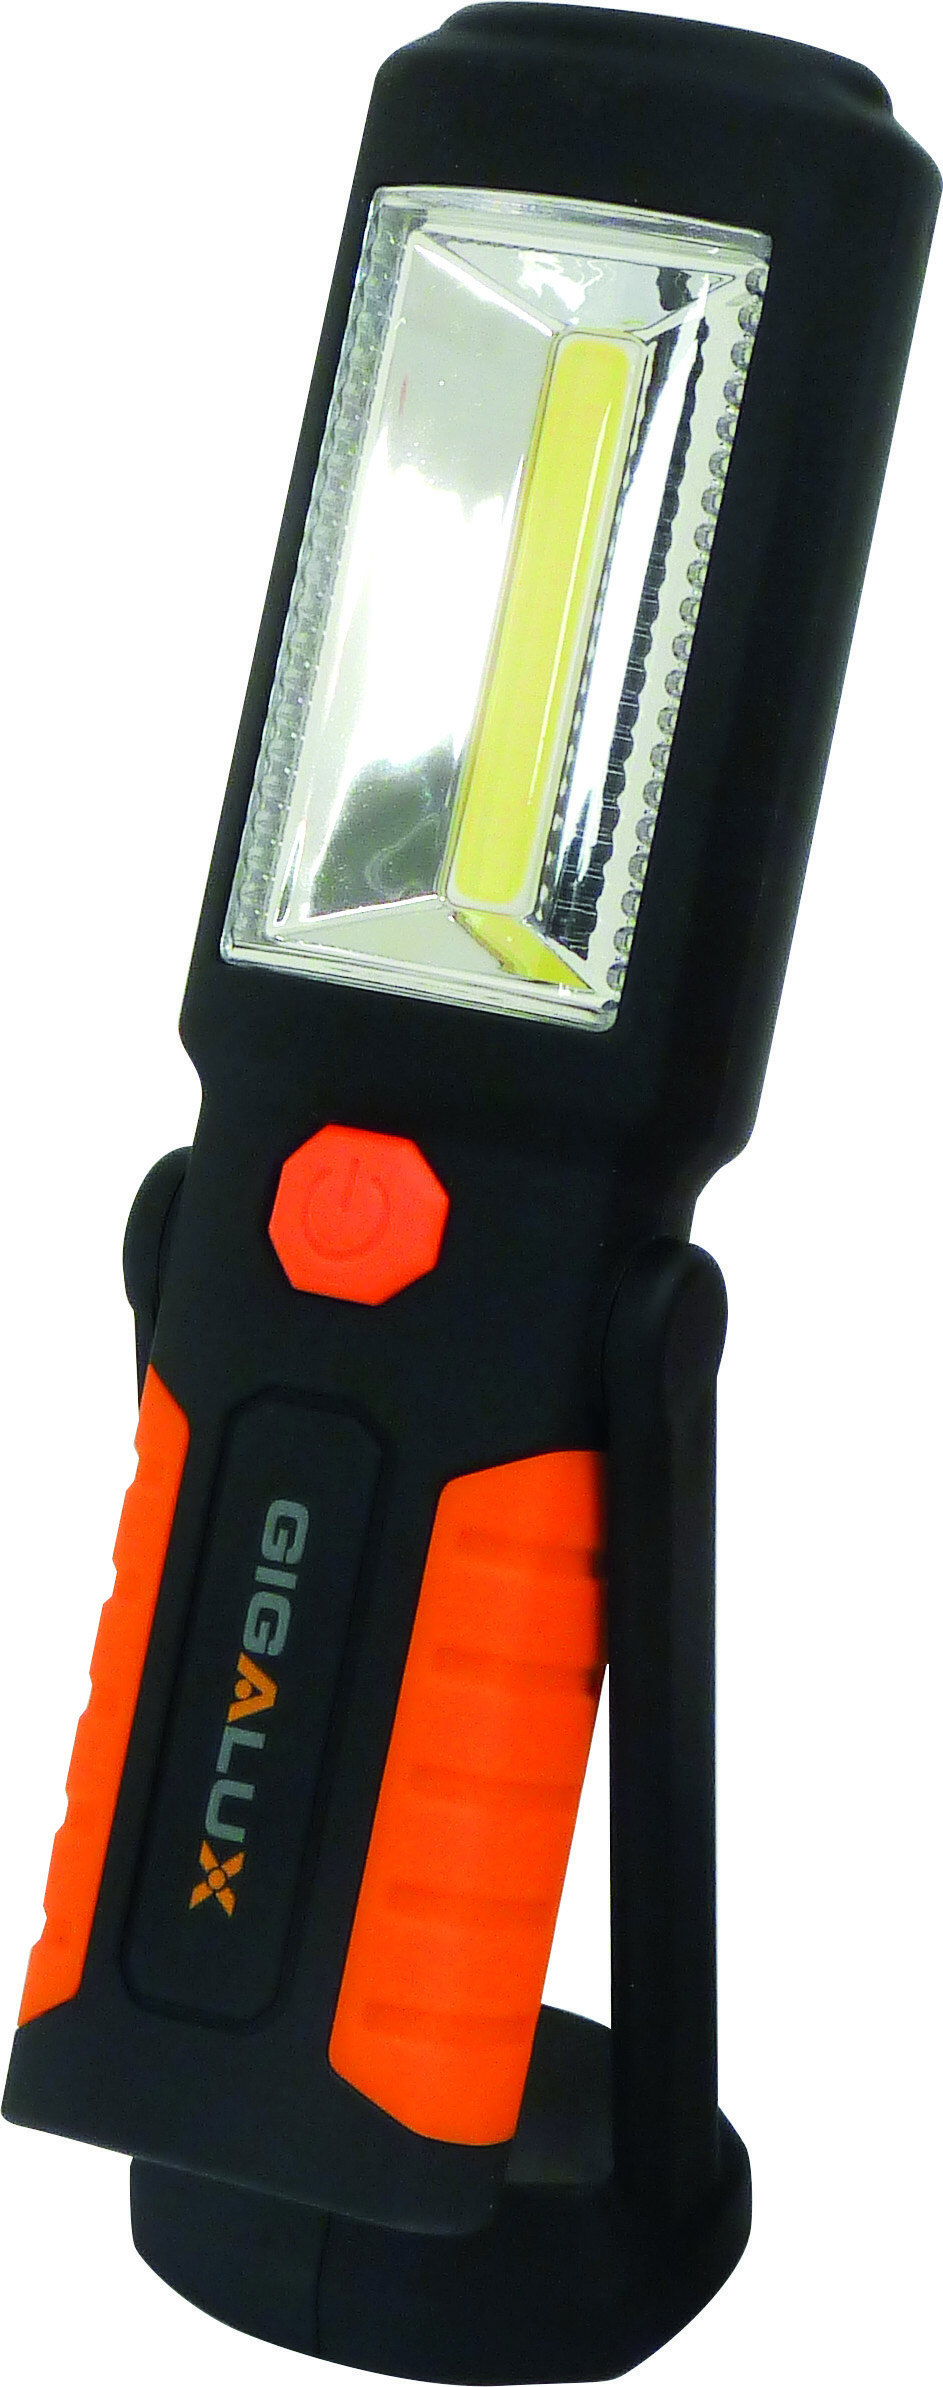 BALADEUSE LED 180 LUMENS ARTICULEE RECHARGEABLE